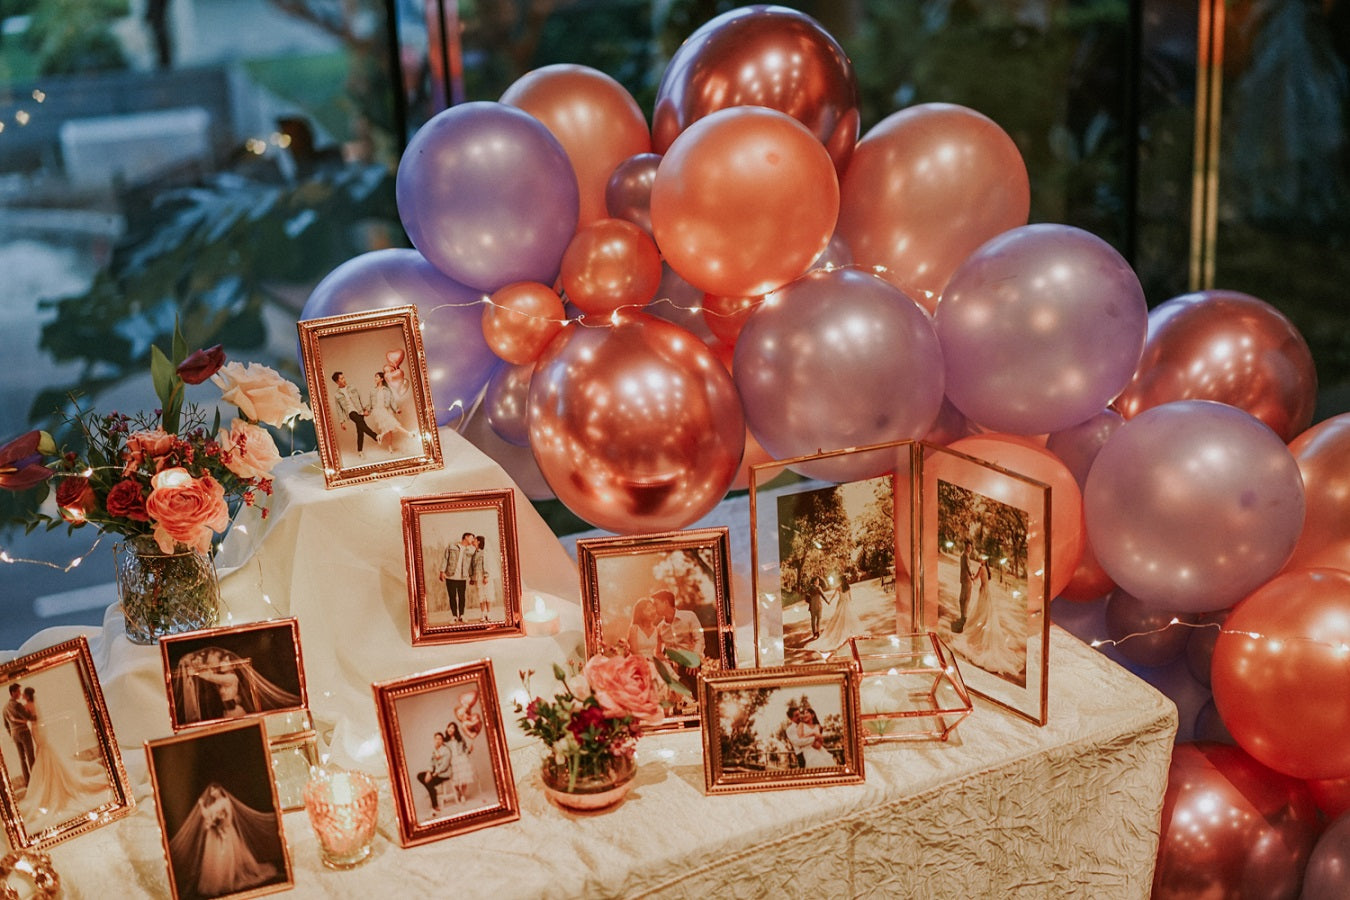 Wedding photo table props for table styling decor at wedding reception with balloons of metallic shades and premium photo gallery setup